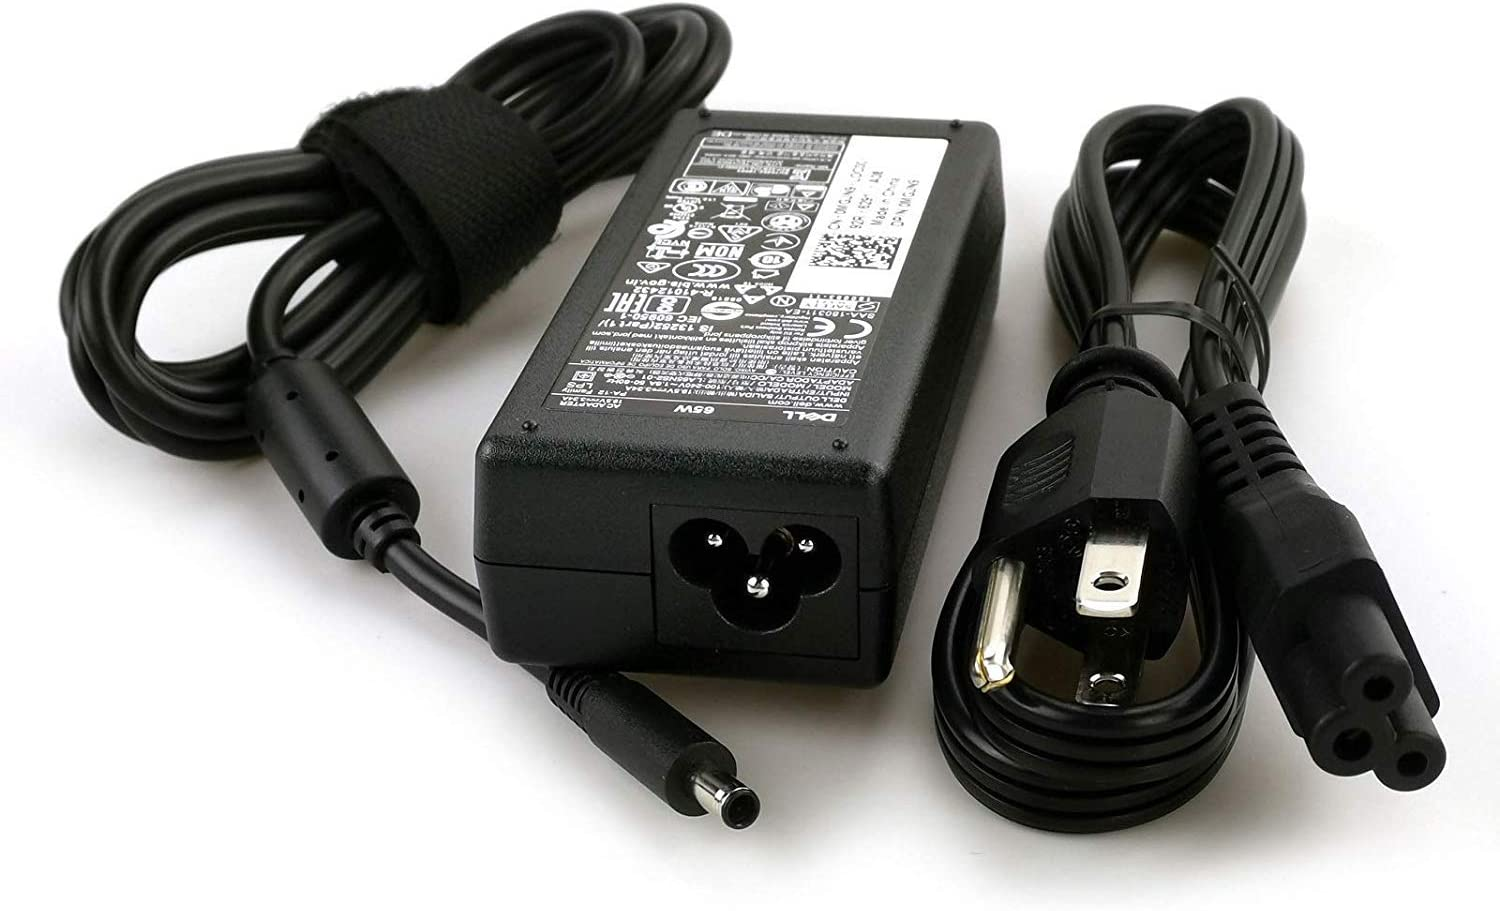 Genuine OEM Original Dell 65W Replacement AC adapter for Dell OptiPlex 3040 Micro, Dell Vostro 3459, Dell Vostro 3559.